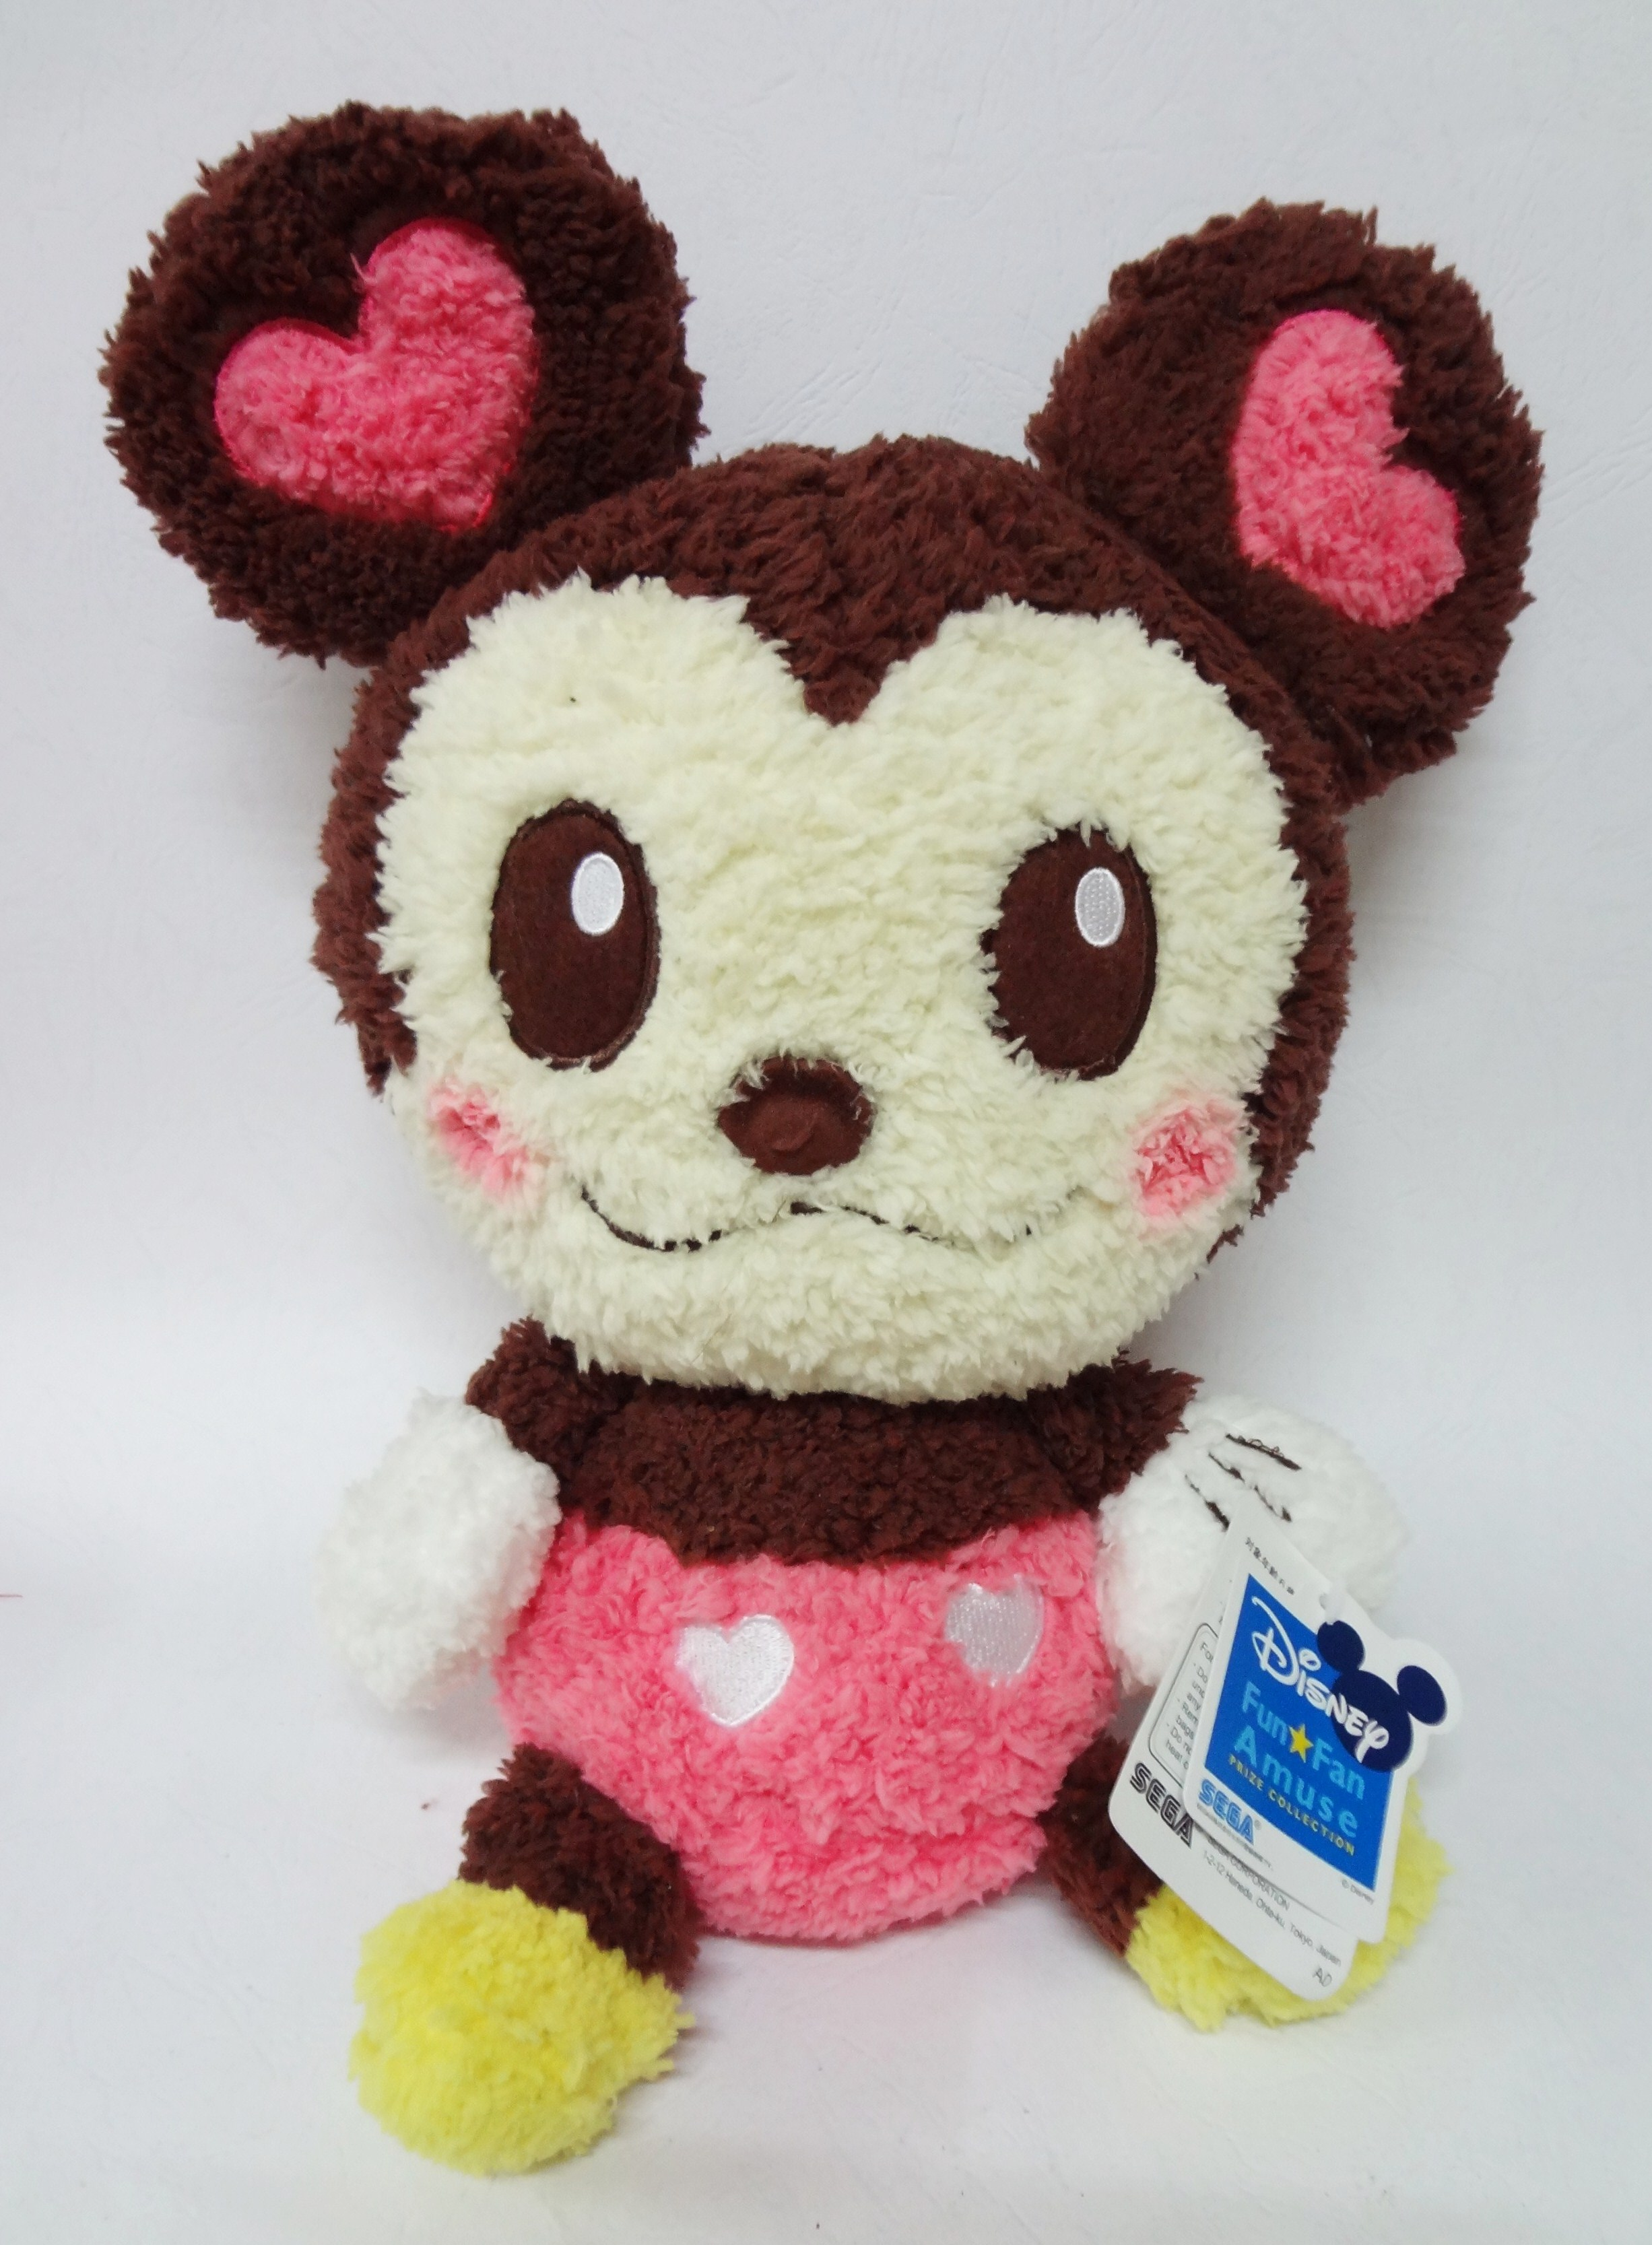 ตุ๊กตา Minnie Mouse - Disney Fun*Fan Amuse Prize Collection